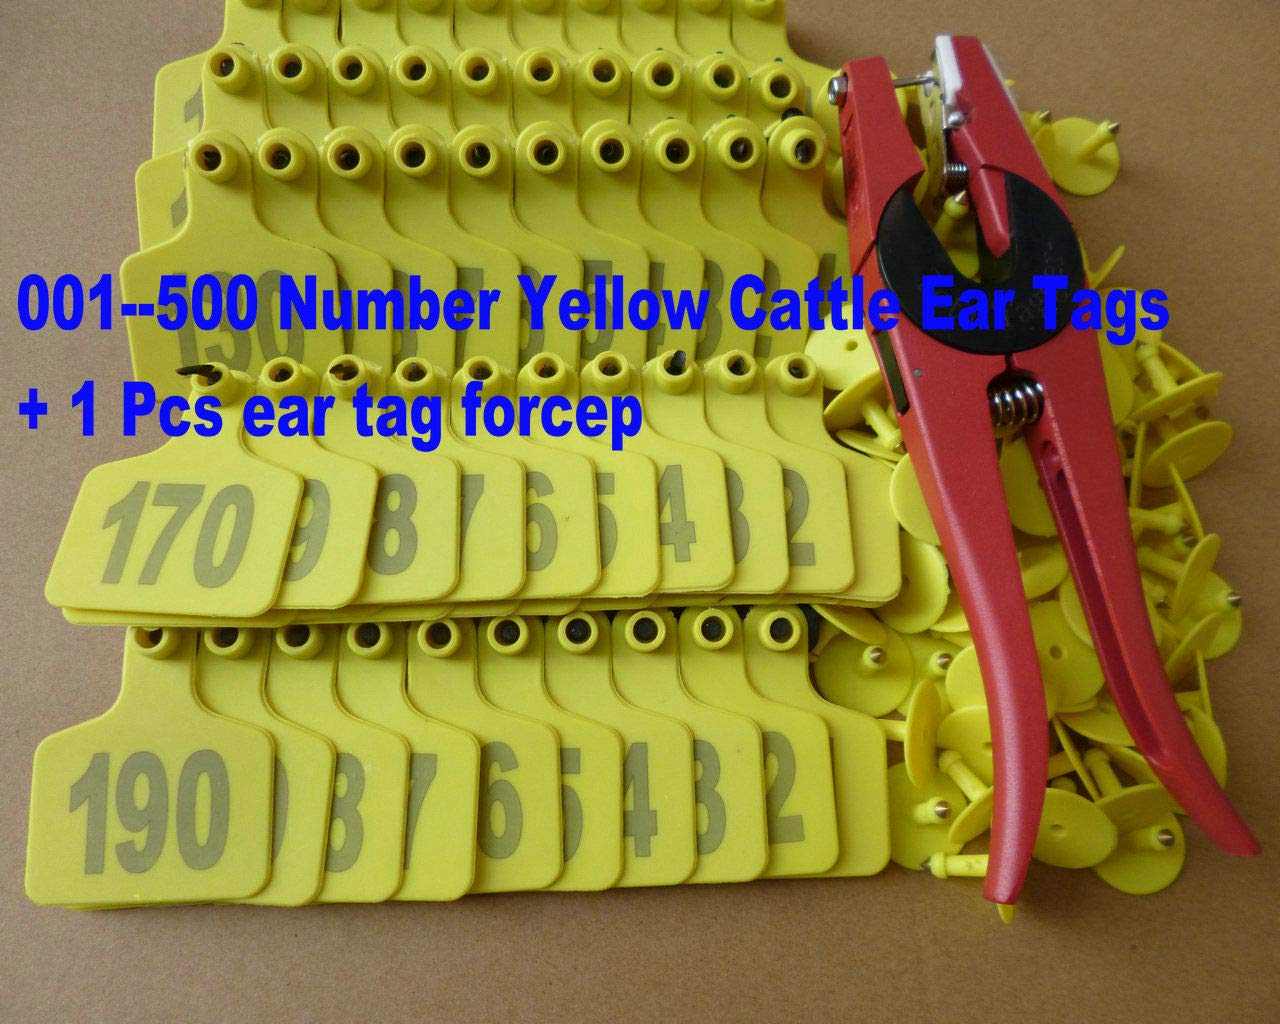 FidgetFidget forcep 001-500 Number Yellow Cattle Ear Tags + Ear tag